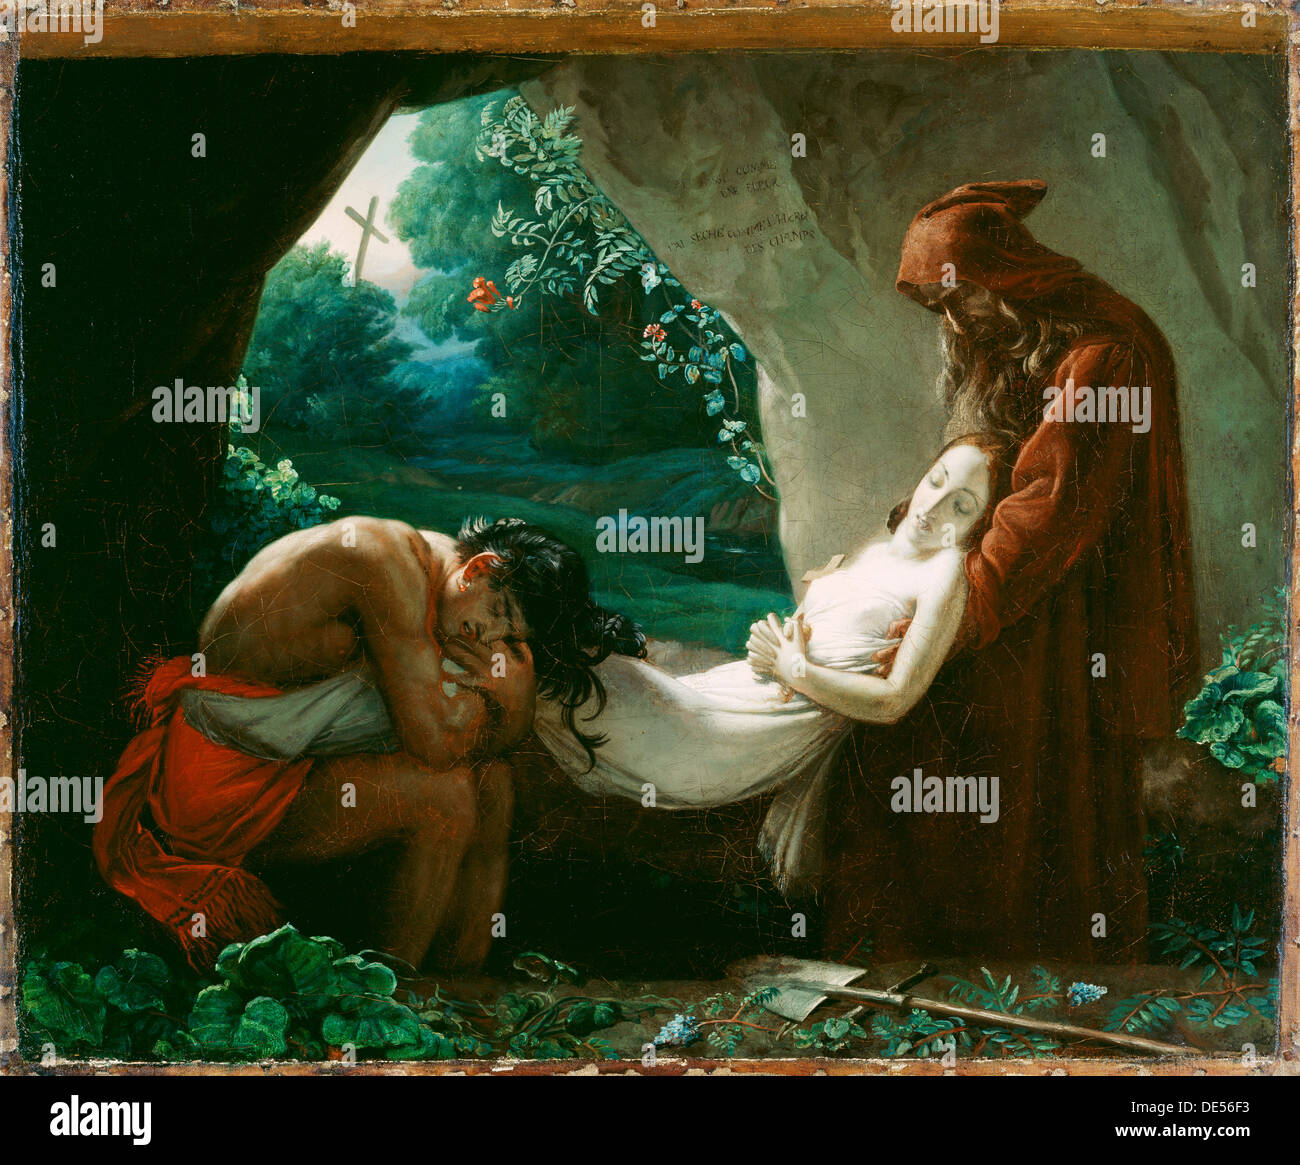 Burial of Atala; After Anne-Louis Girodet de Roucy-Trioson, French, 1767 - 1824; after 1808; Oil on canvas - Stock Image